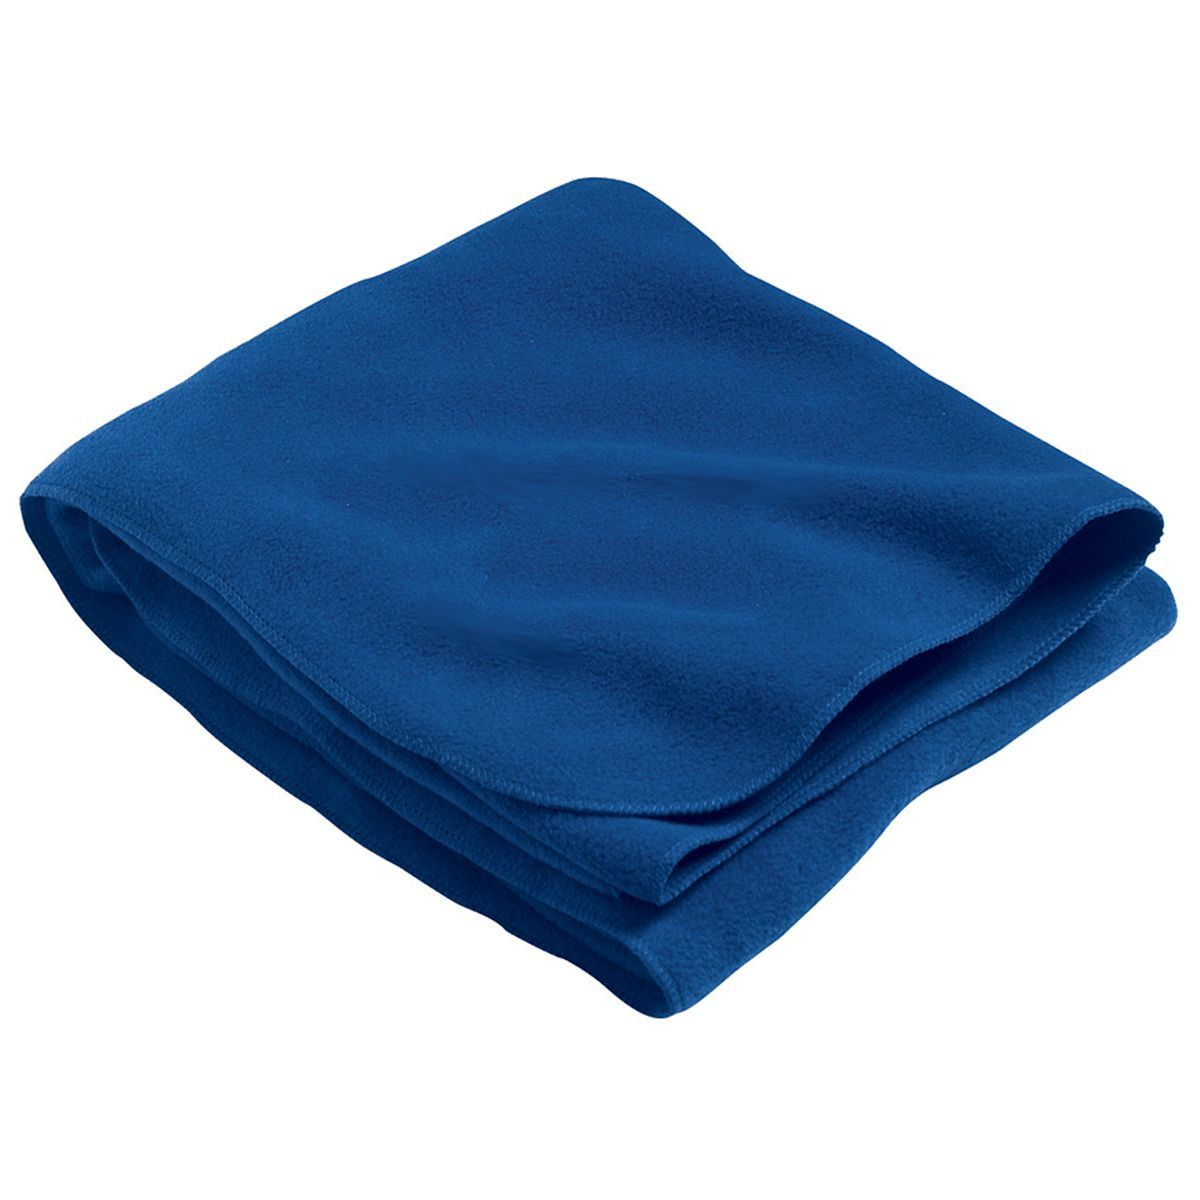 Stadium Blanket - ROYAL